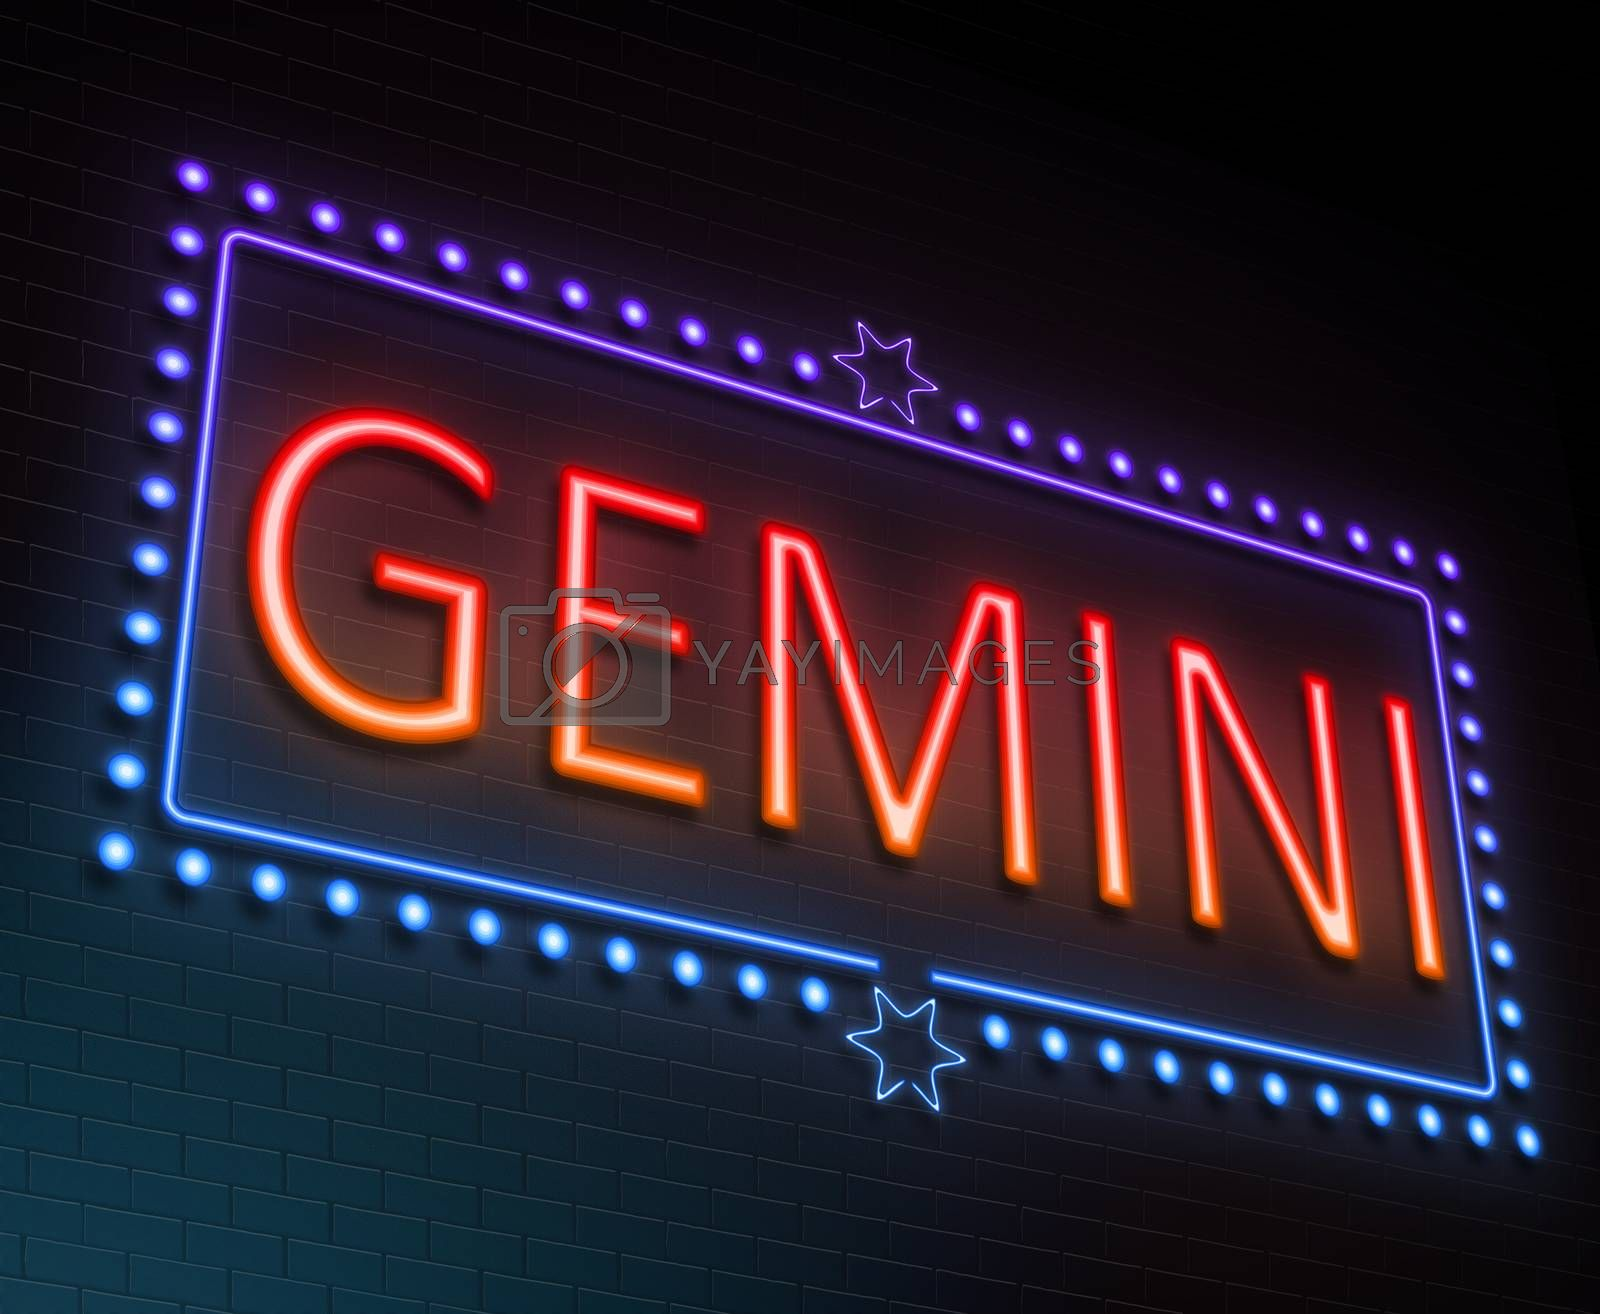 Illustration depicting an illuminated neon sign with a gemini concept.